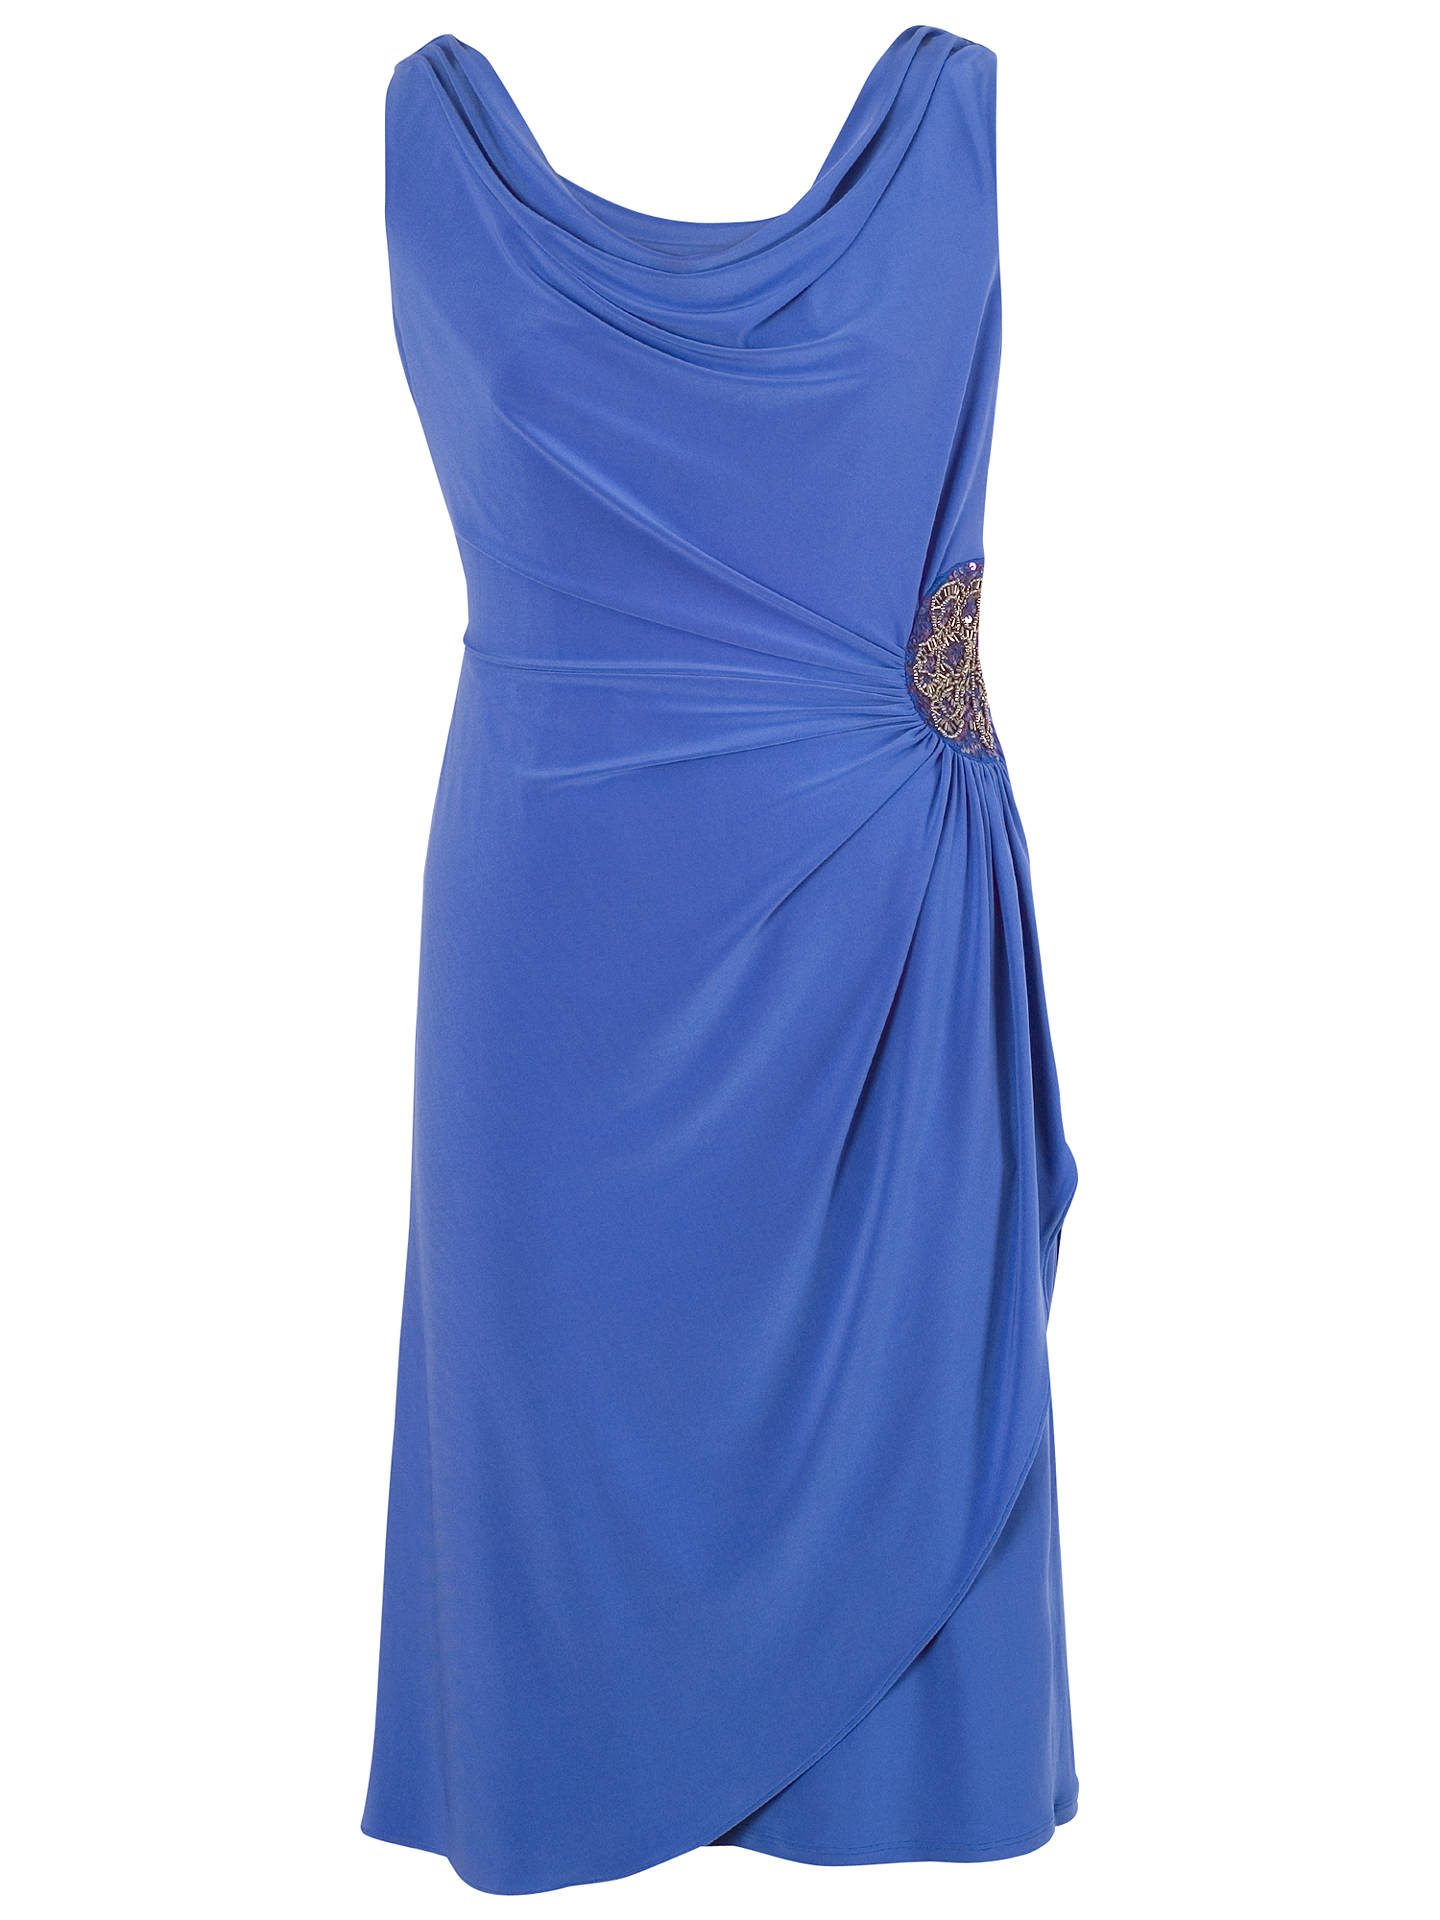 BuyChesca Cowl Neck Side Bead Dress, Lupine, 12 Online at johnlewis.com